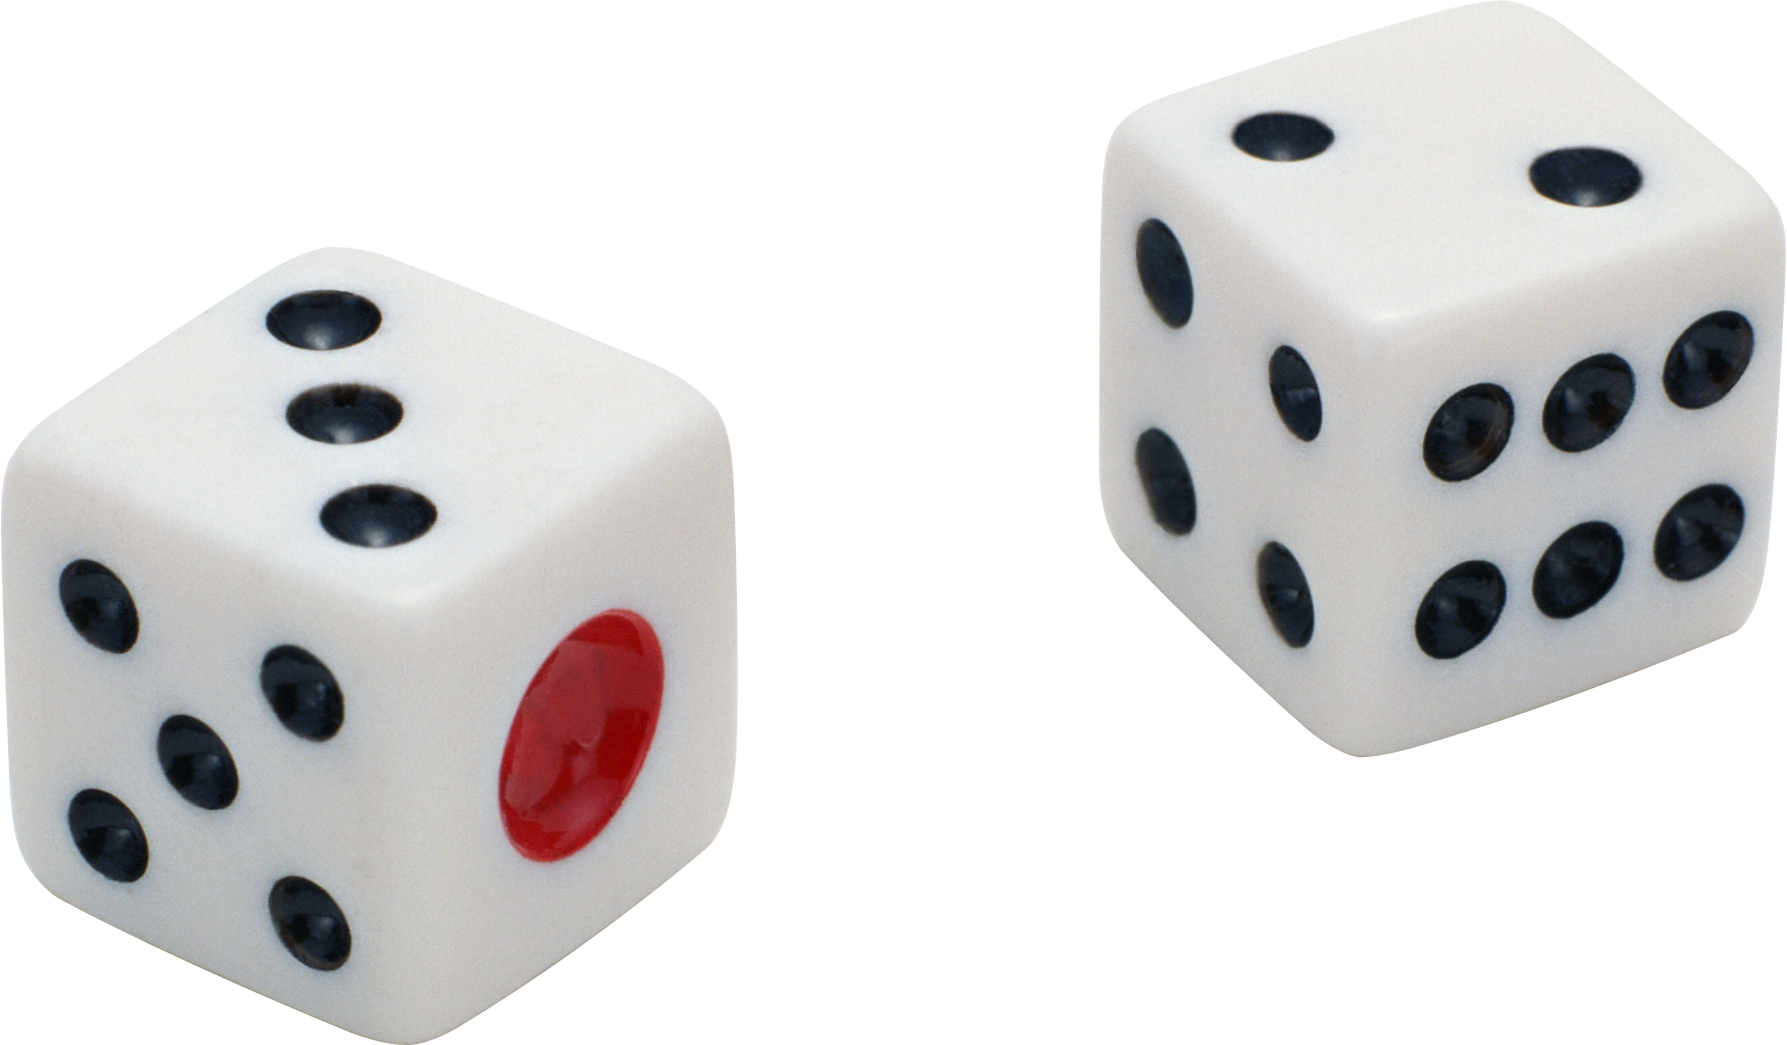 dice png images are download crazypngm crazy png images download #30553